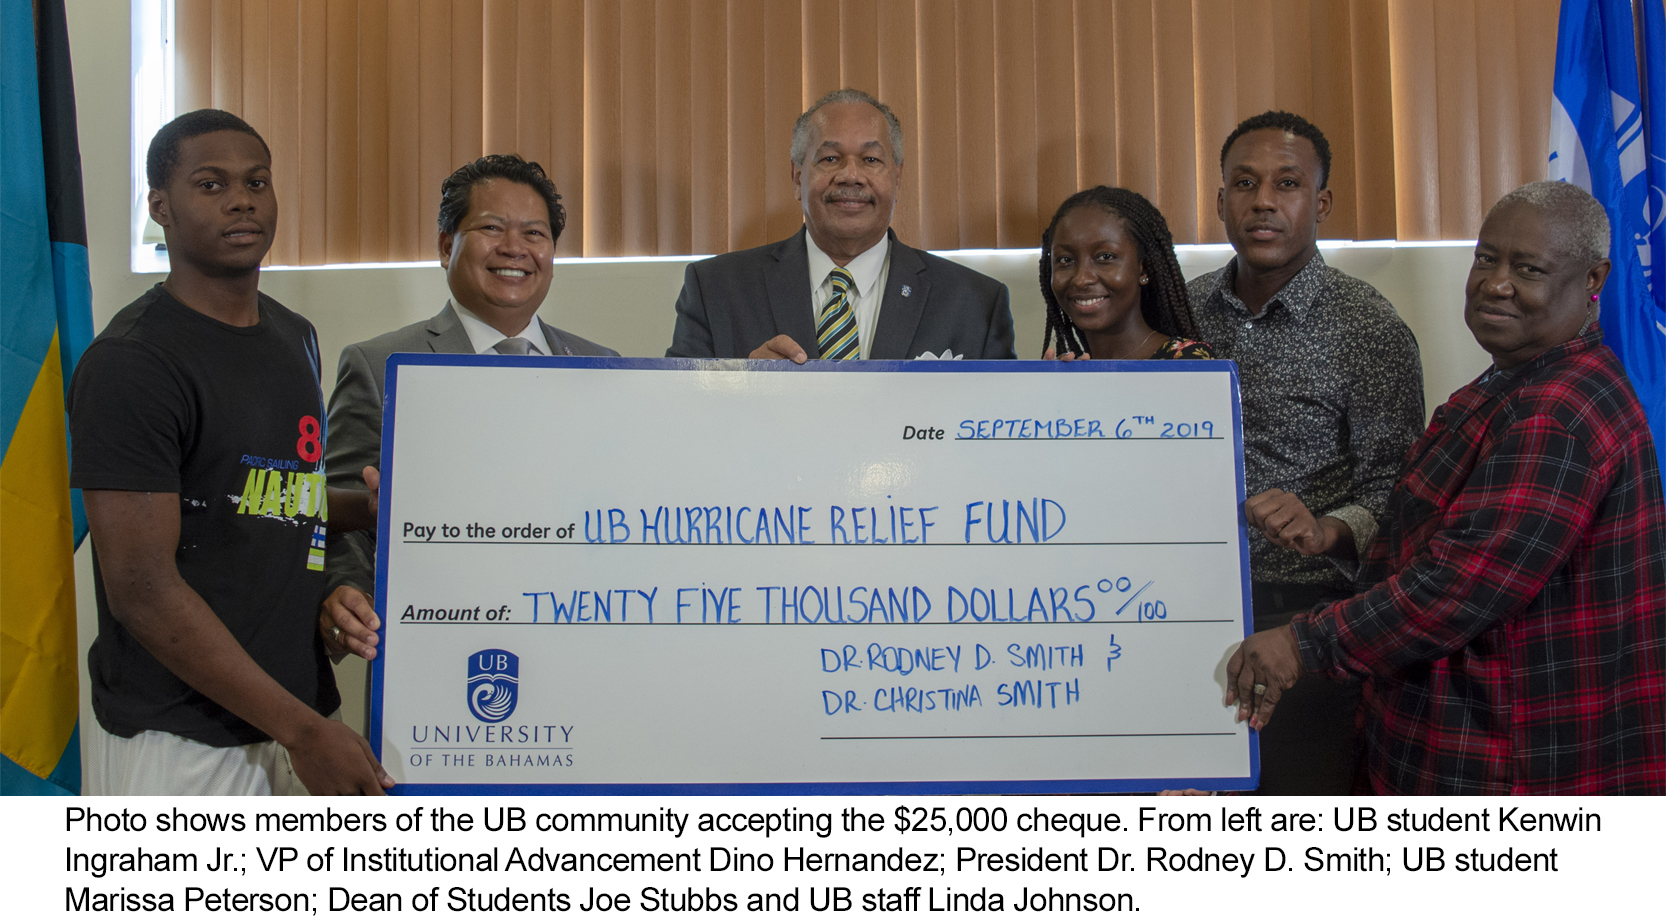 UB President Issues Matching Gift Challenge for Hurricane Relief. University Pledges to Rebuild Northern Campus